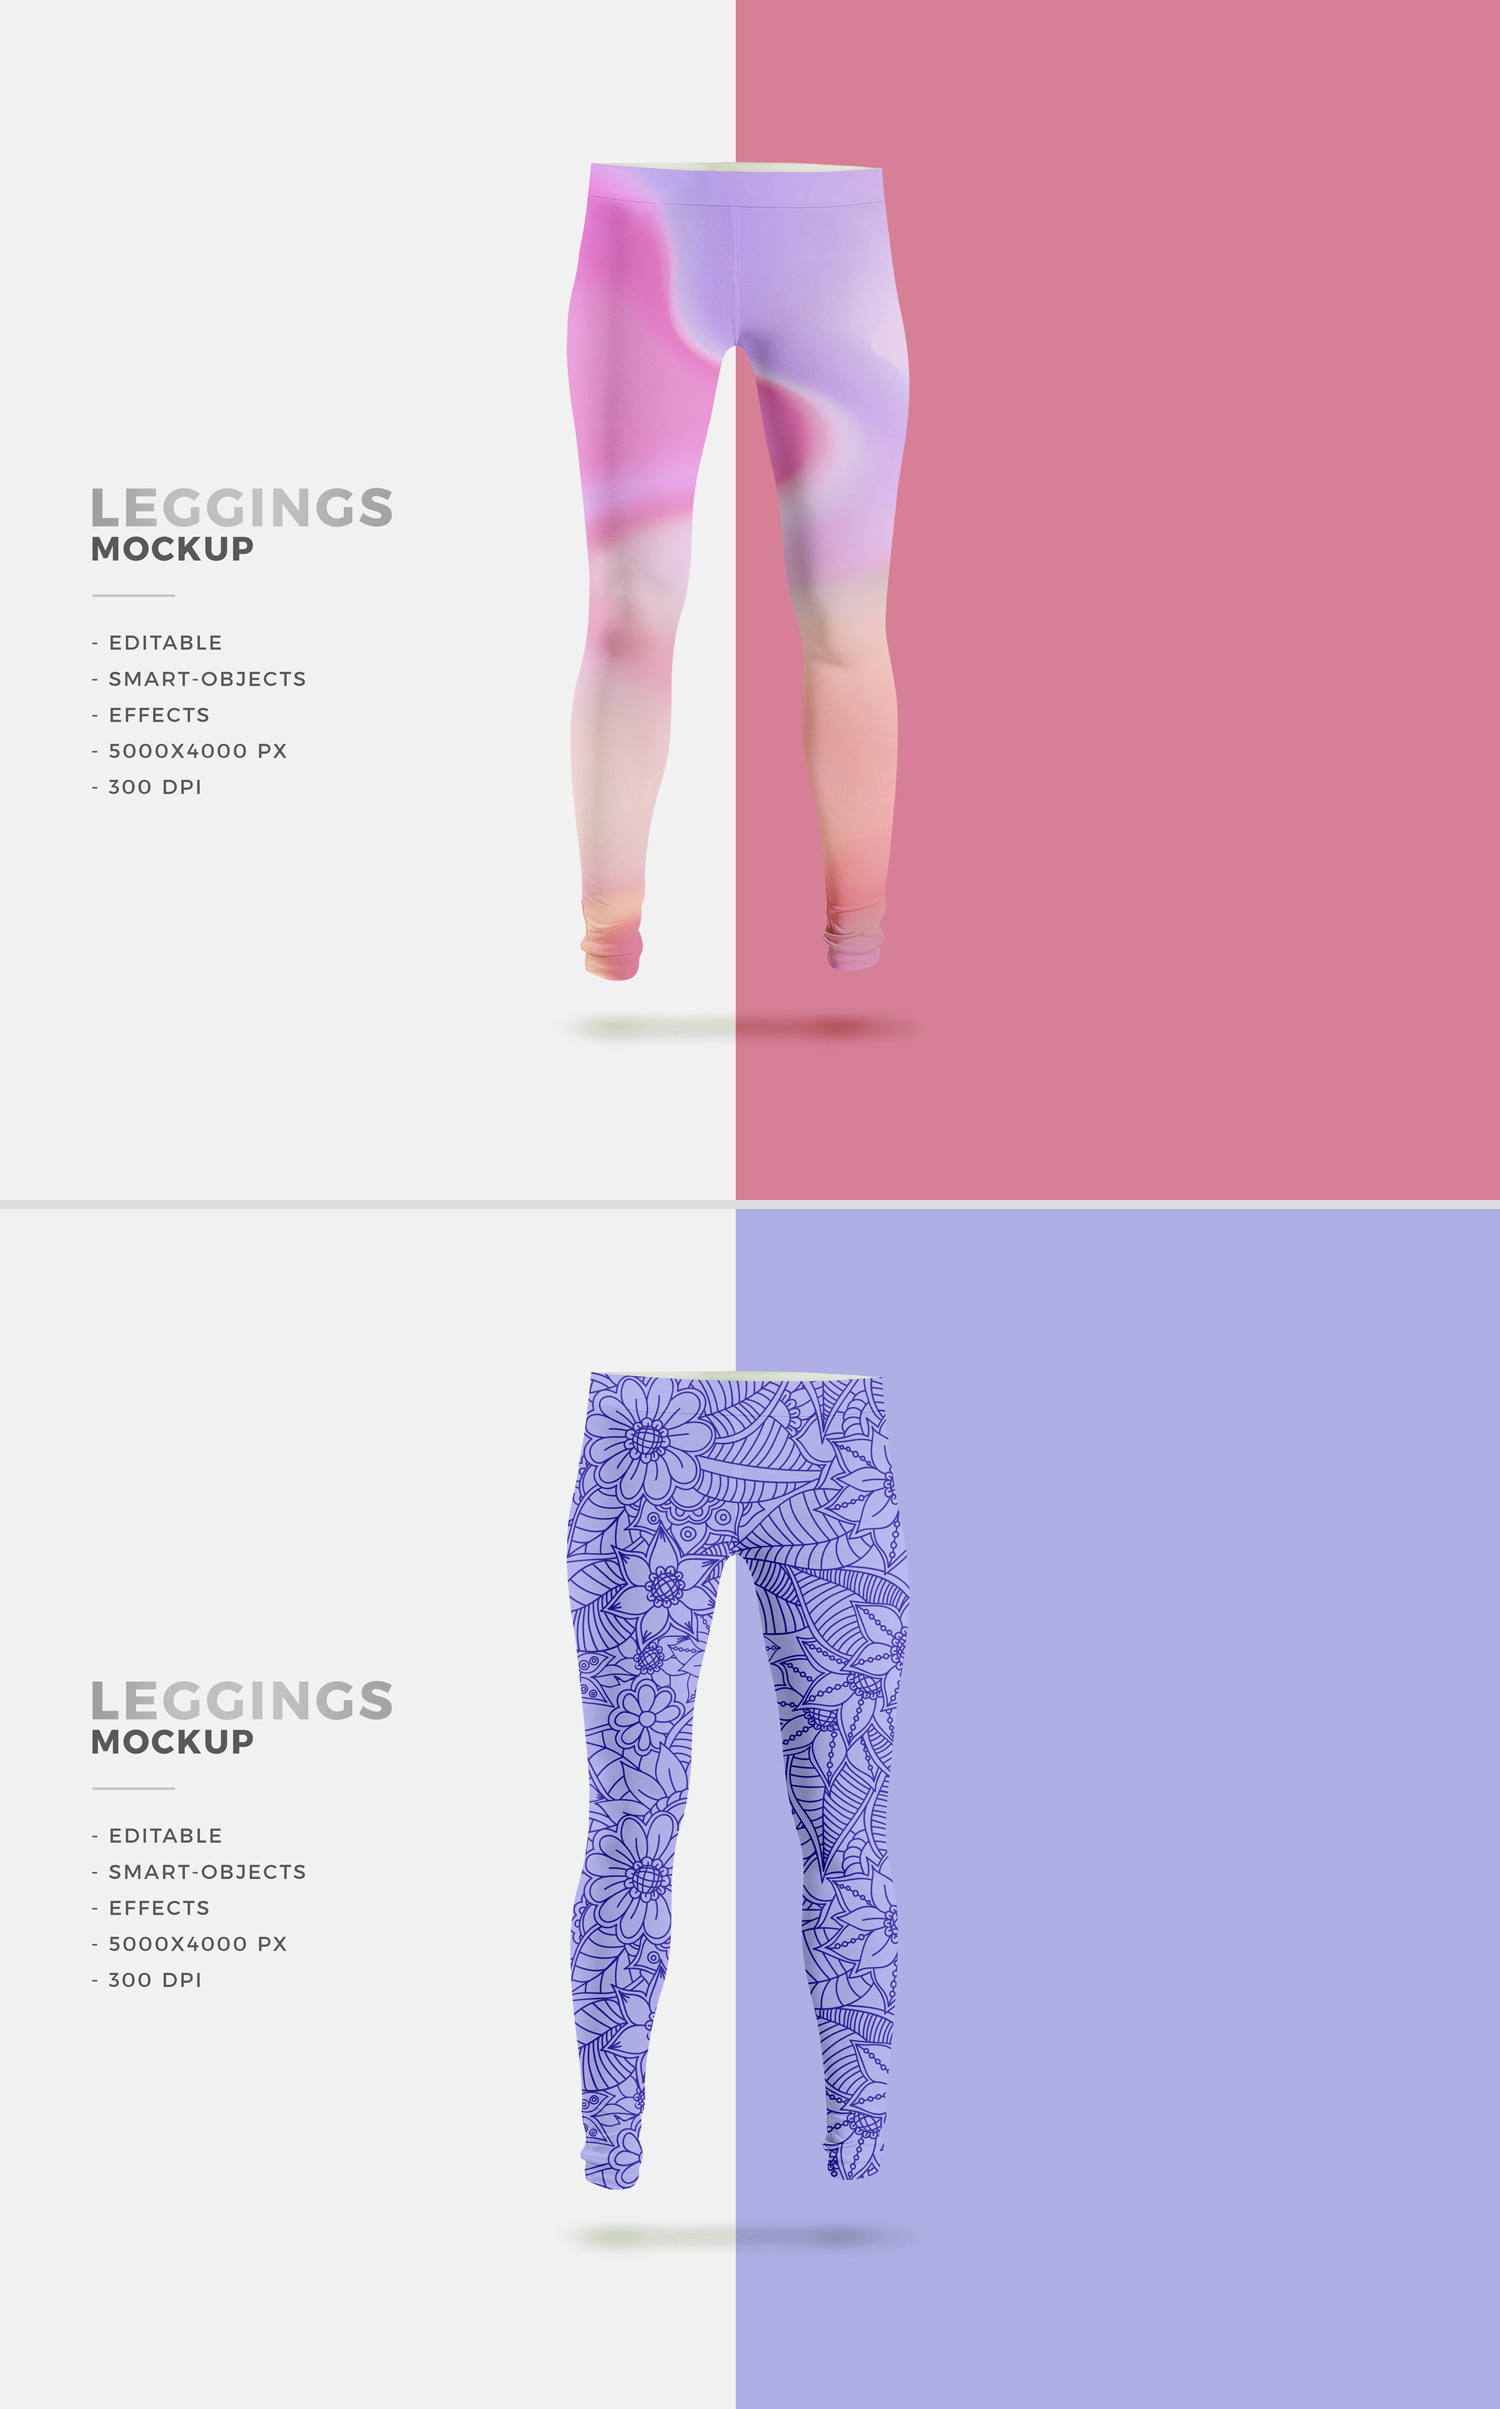 Free-PSD-Laddies-Fashion-Leggings-Mockup